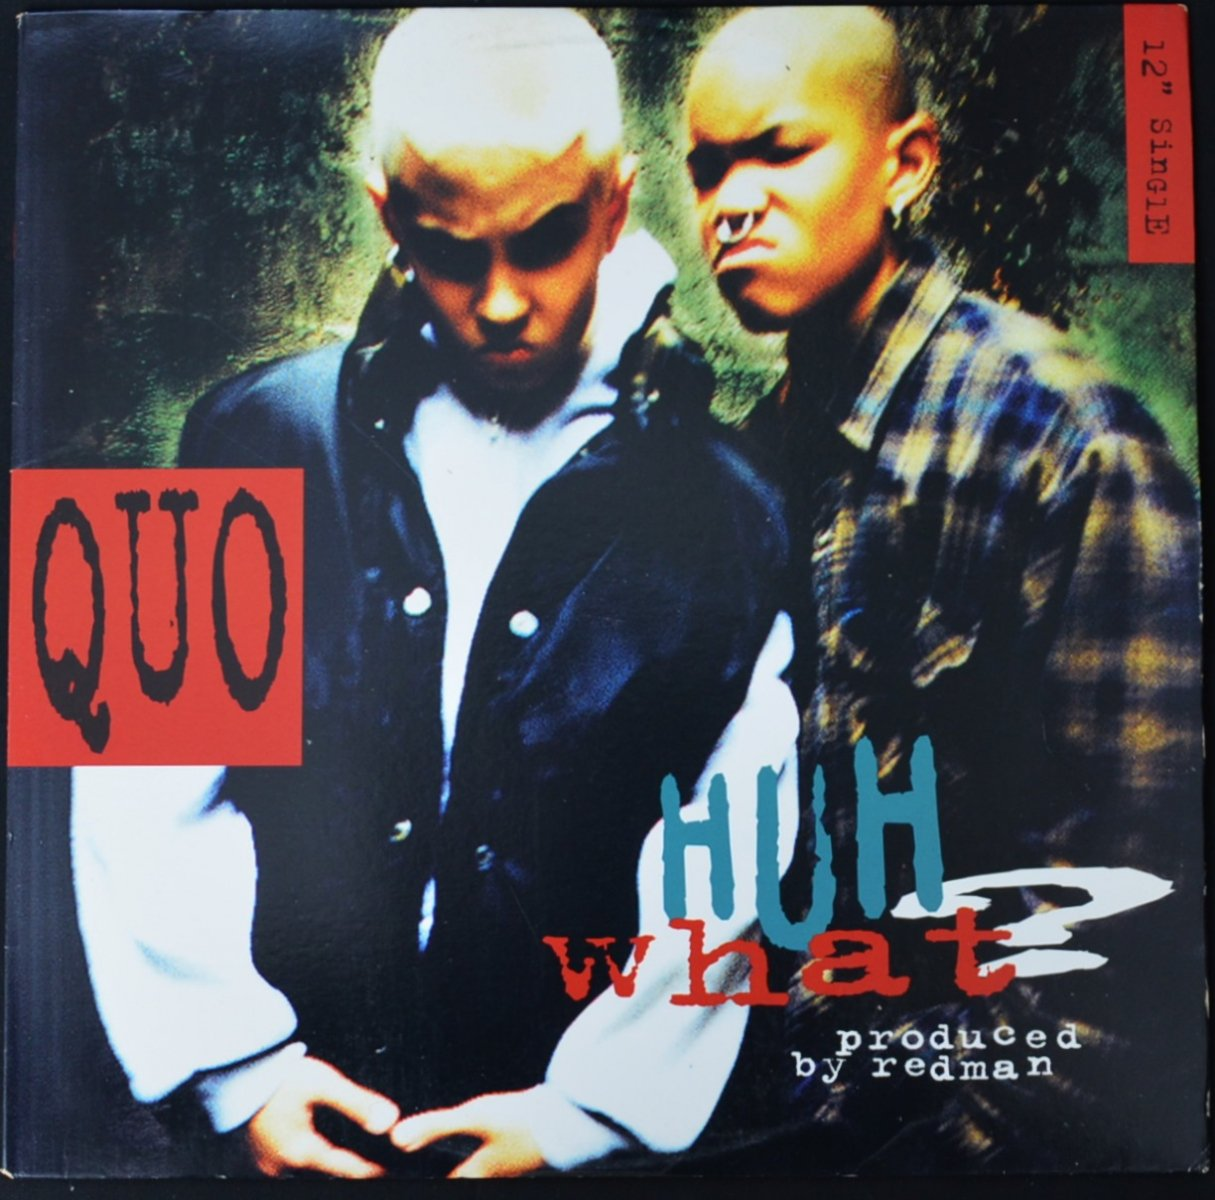 QUO ‎/ HUH WHAT? (PROD BY REDMAN) / ONCE AGAIN (12